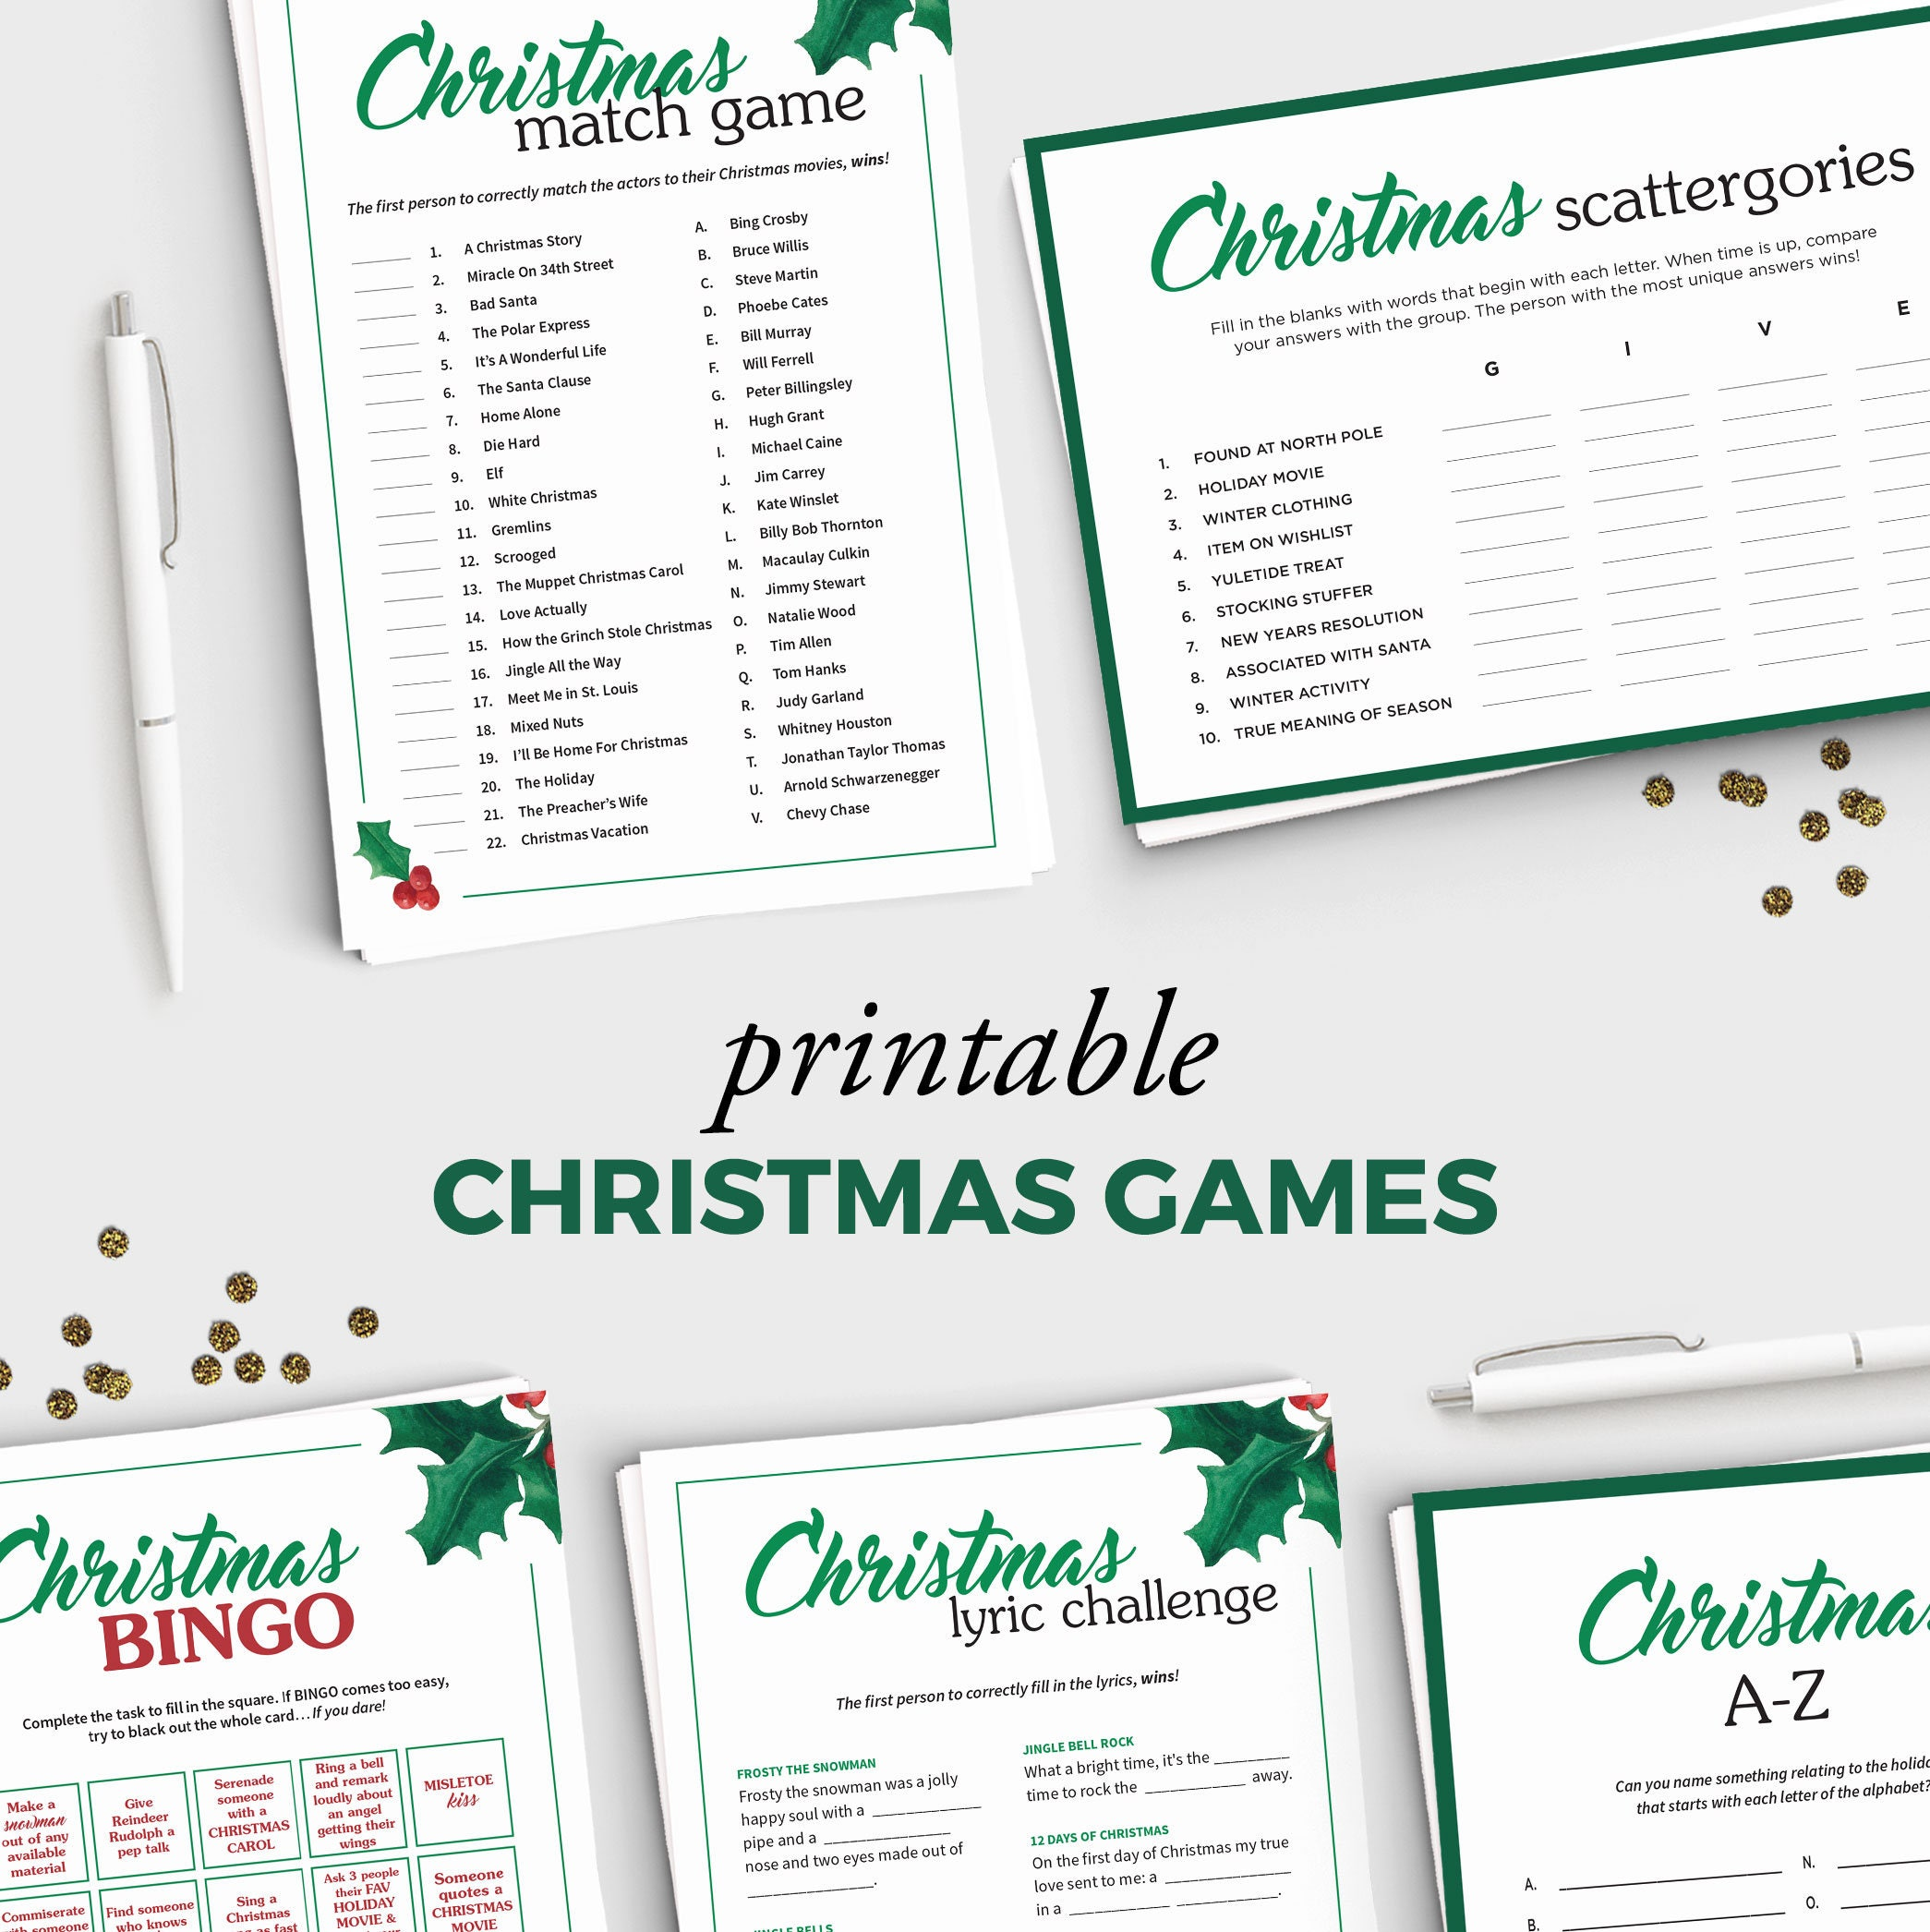 Free Adult Christmas Party Games: 5 Fun Holiday Party Games For Adults Printable Christmas